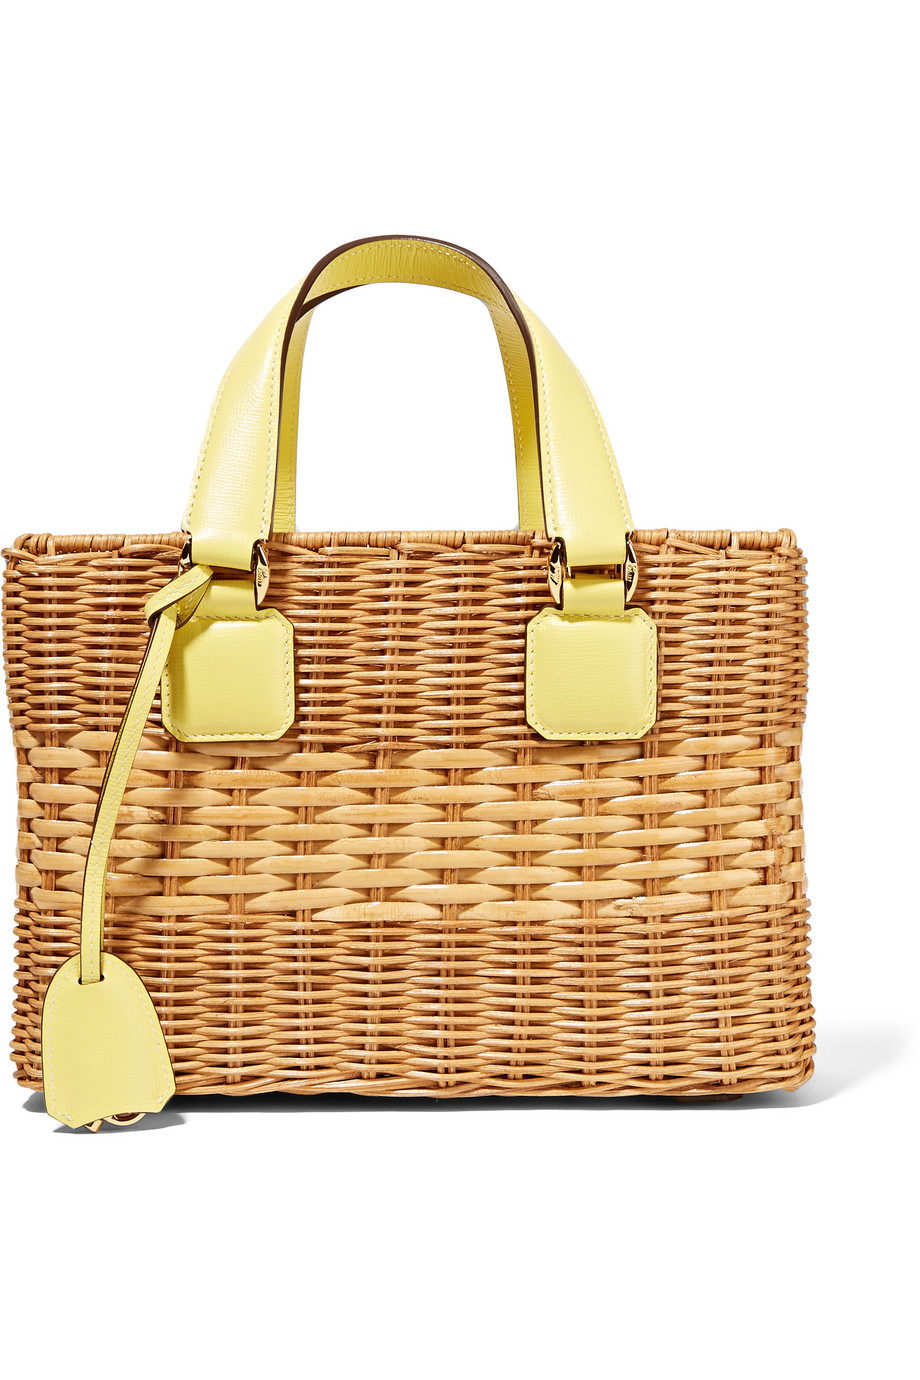 Mark Cross Manray Small Textured Leather-Trimmed Rattan Tote, Yellow/Beige, Women's